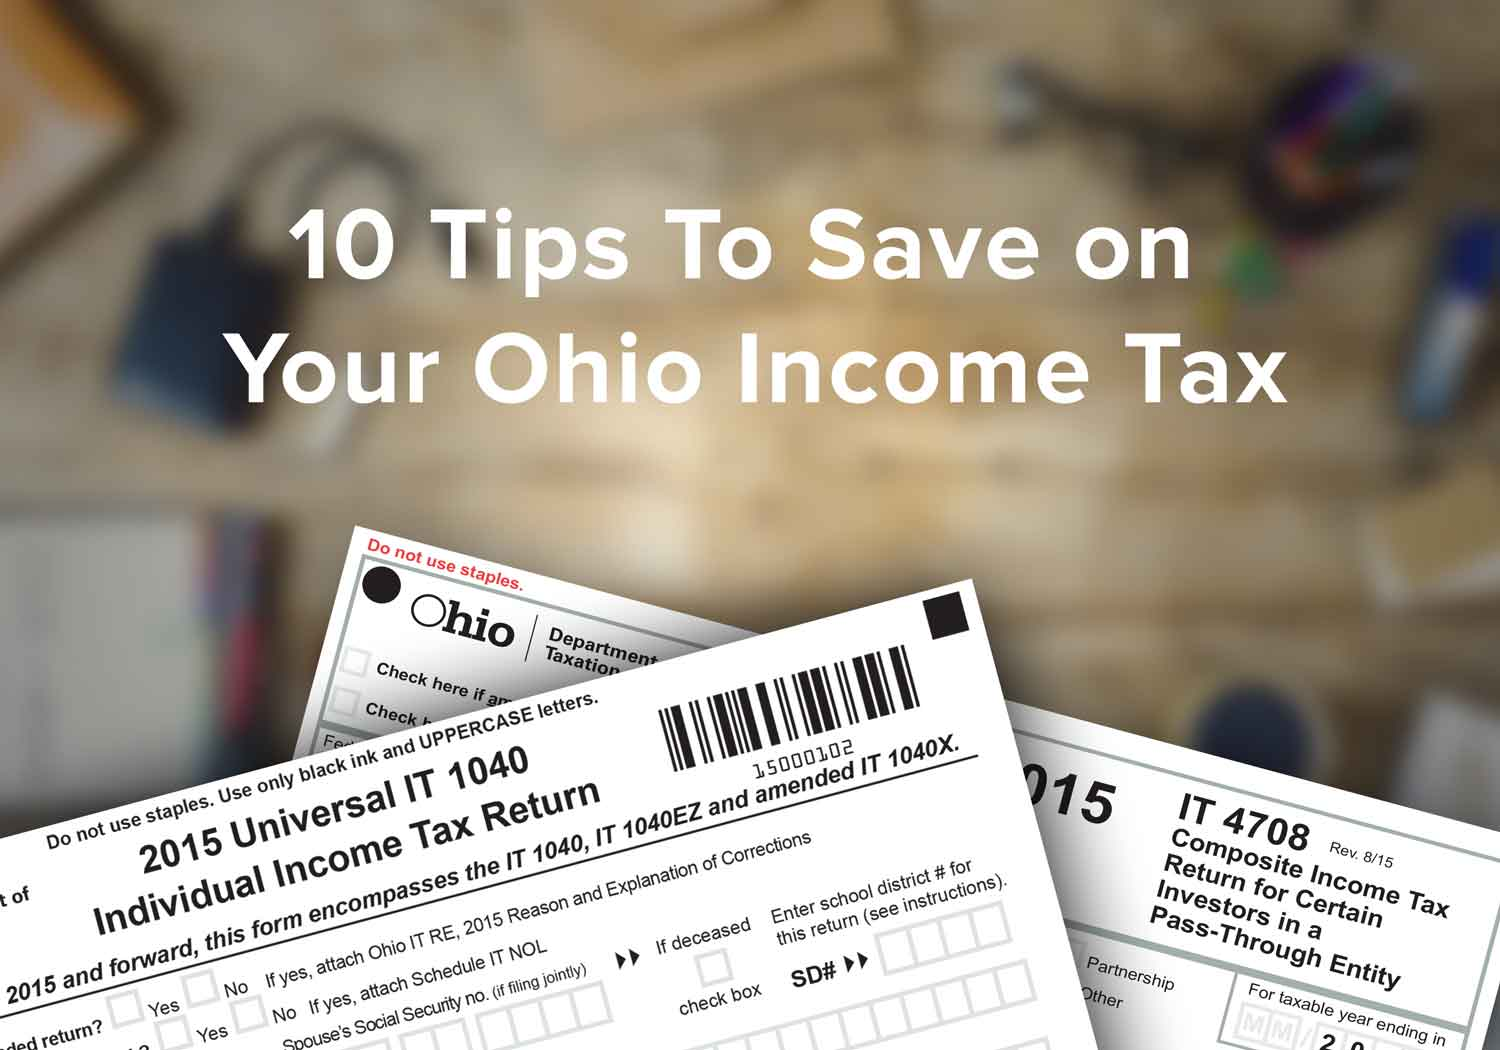 10 Tips To Save On Your Ohio Income Tax Tax Attorneys Tax Lawyer